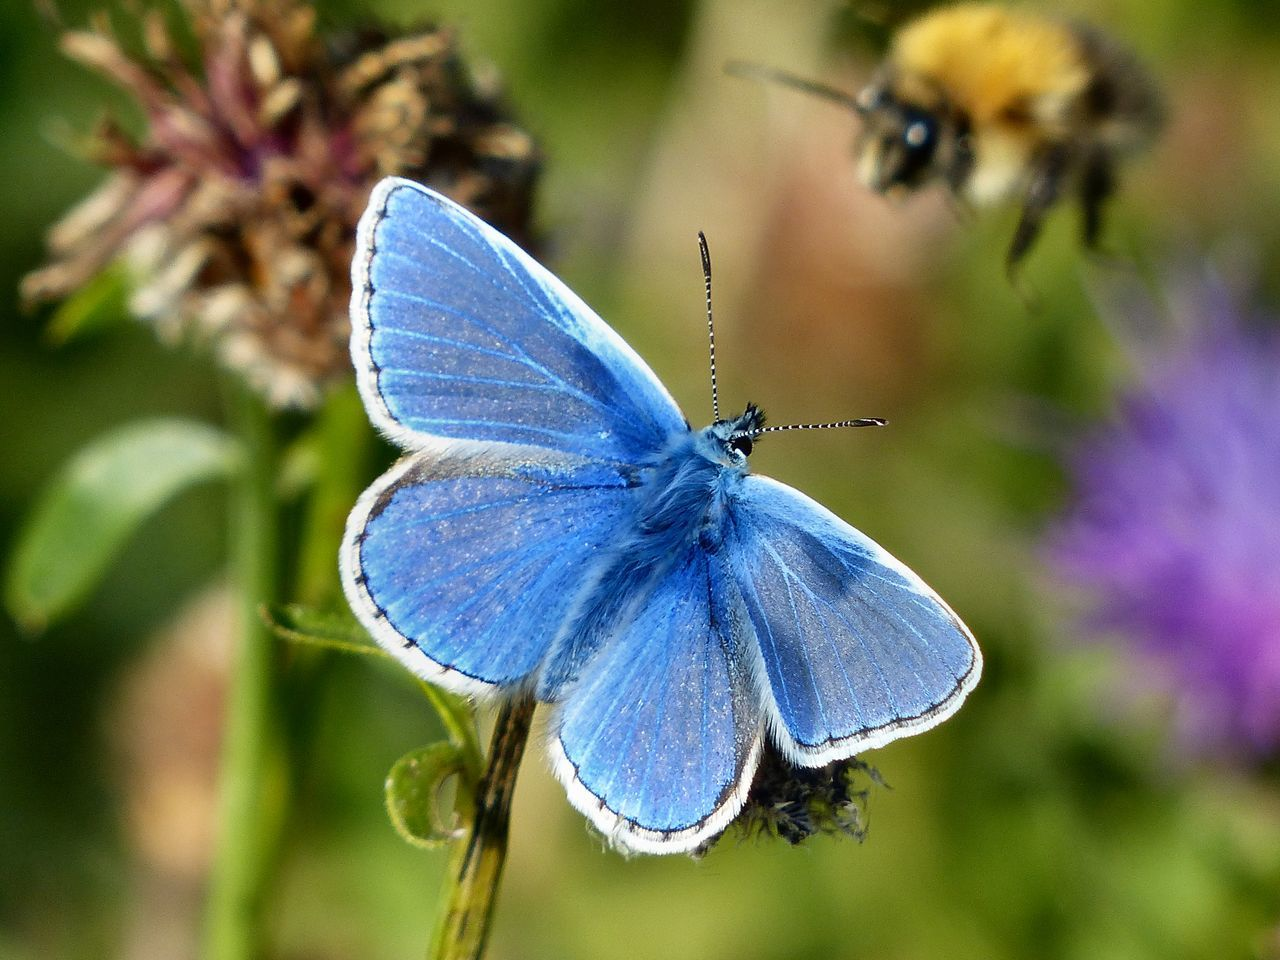 A Common Blue butterfly is watching a bumble bee approach, on a warm August afternoon on the South Downs north of Hove, East Sussex - 2016. Bee Brighton Bumble Bee Common Blue Common Blue Butterfly East Sussex England England🇬🇧 Hove South Downs South Downs National Park